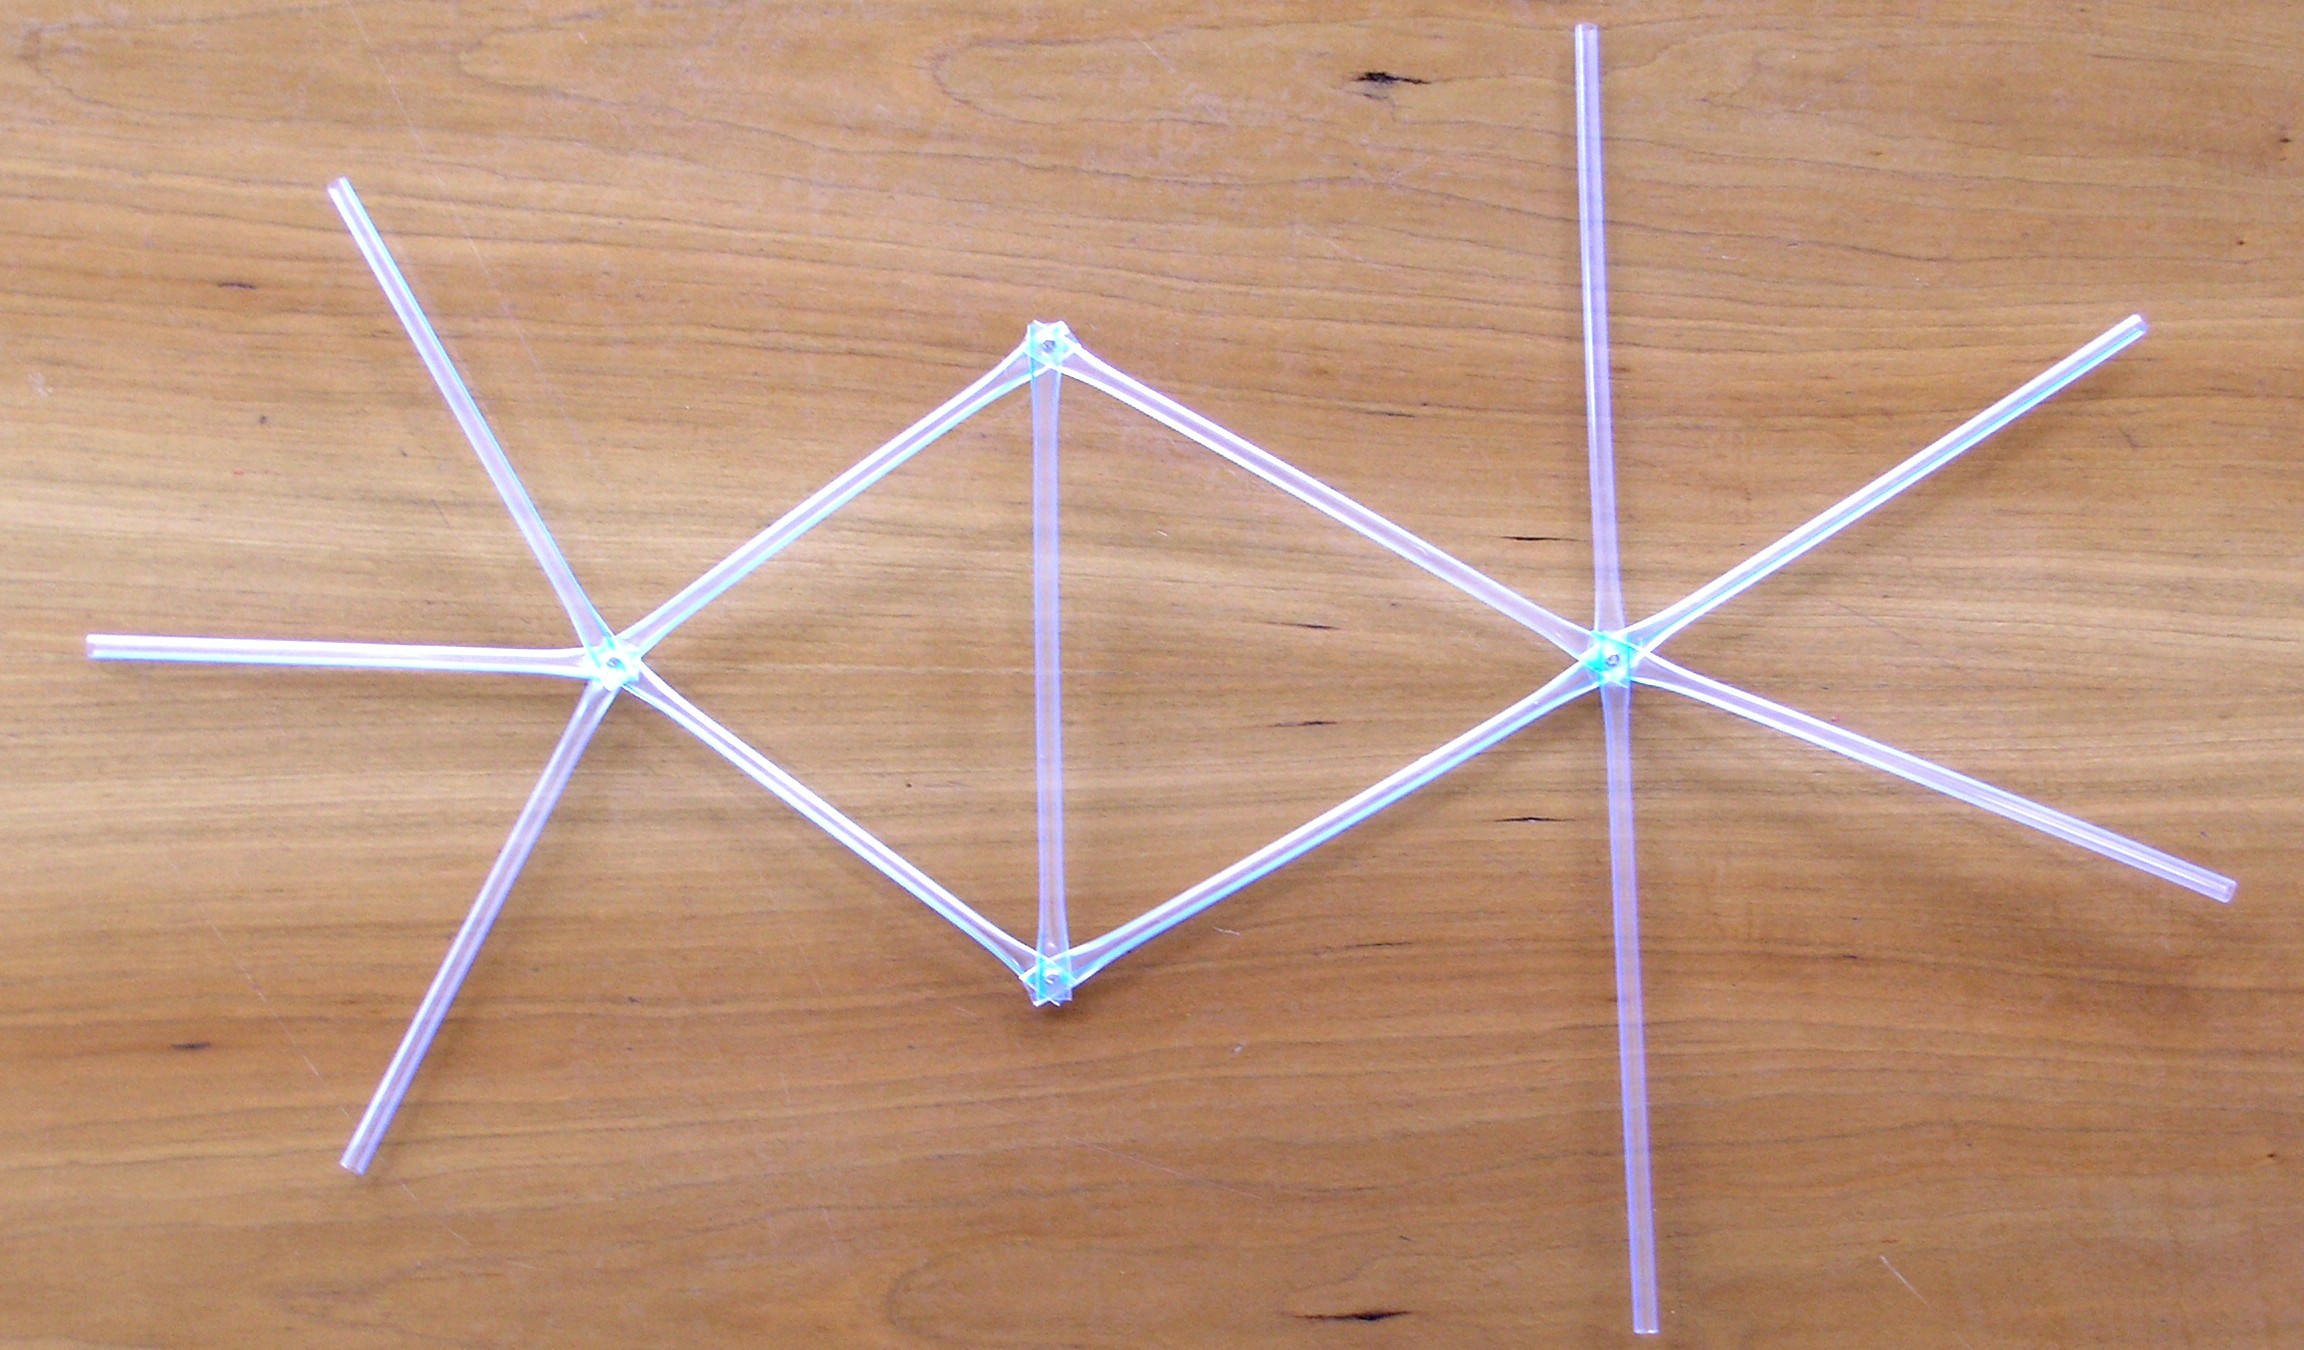 Geodesic dome parts made of straws